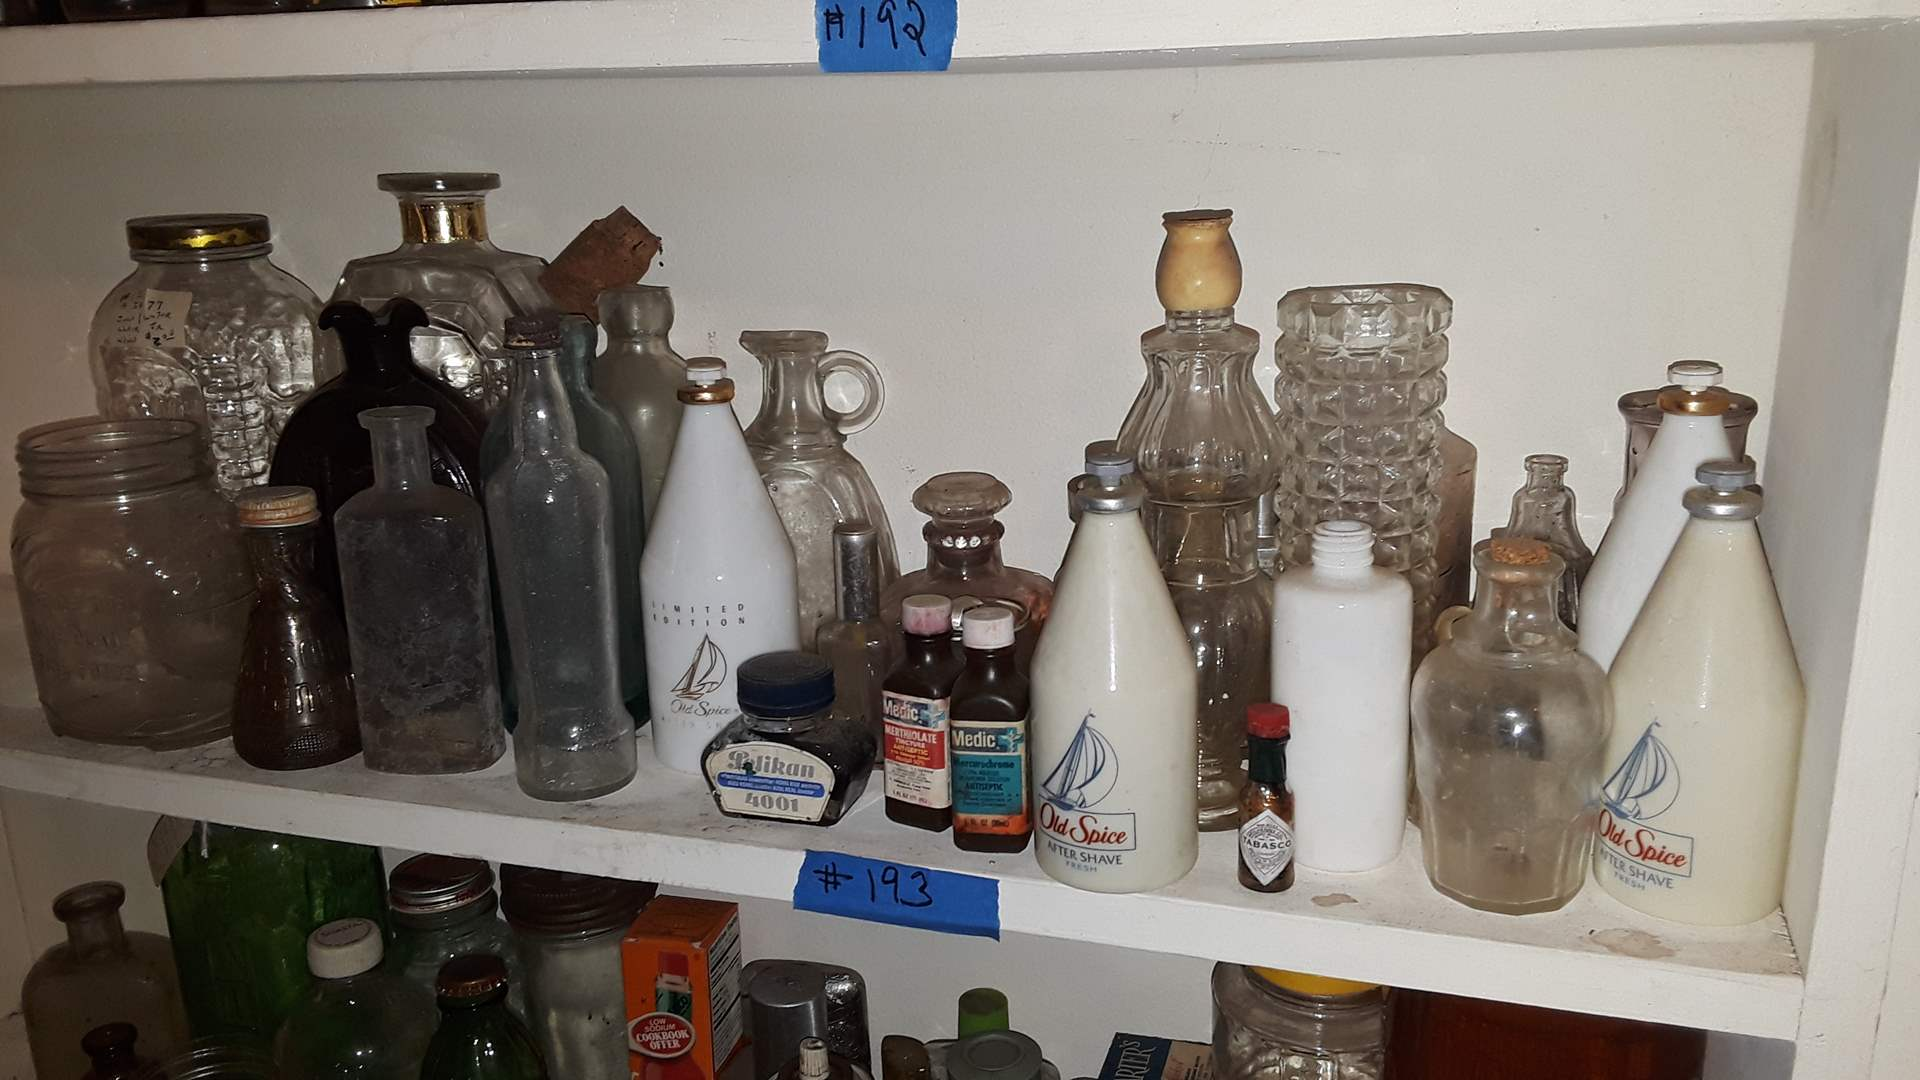 Lot # 193 VINTAGE AND ANTIQUE BOTTLES, OLD SPICE, SUCCESS TO THE TRAIL ROAD BOTTLE